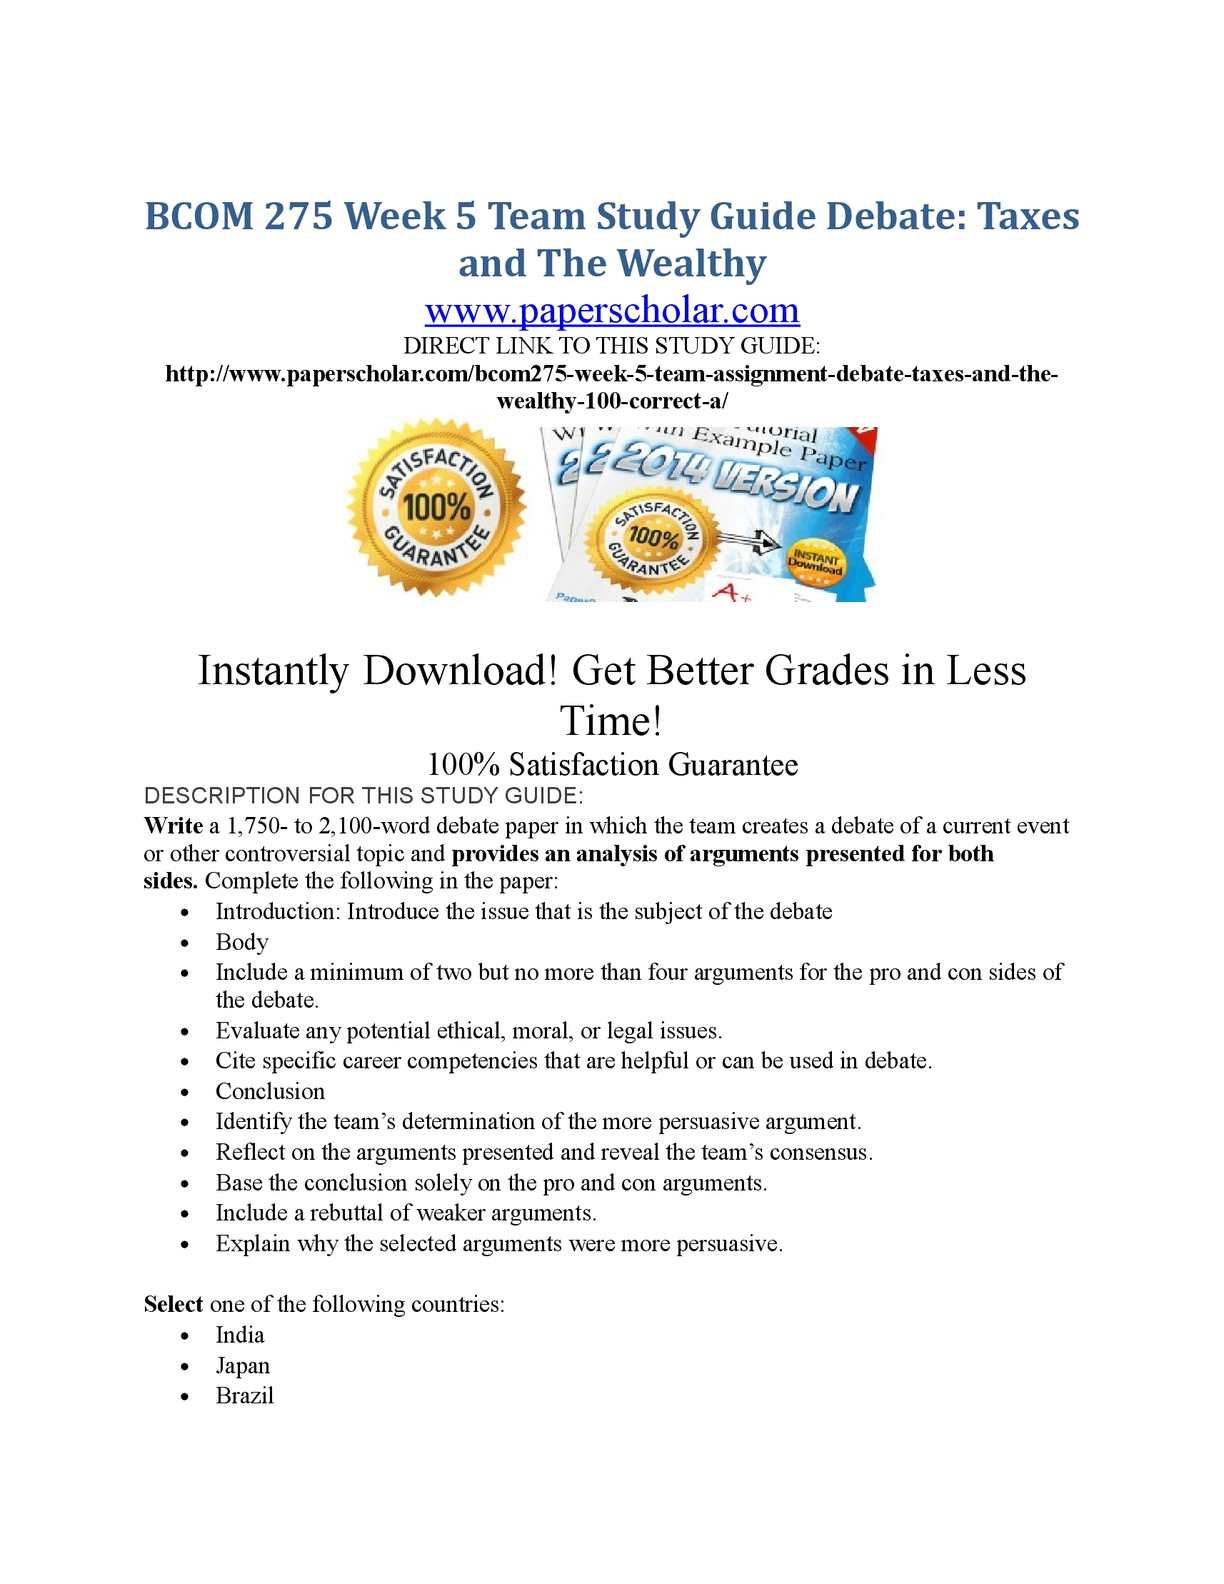 week two study guide Or visit wwwhwcampuscom mgt 312 week 2 knowledge check study guide 1 emily is an 7 rhythms inc and beats inc are two music institutes set to launch at the same time this year rhythms has been providing detailed information in the papers and on the internet about the courses it offers.